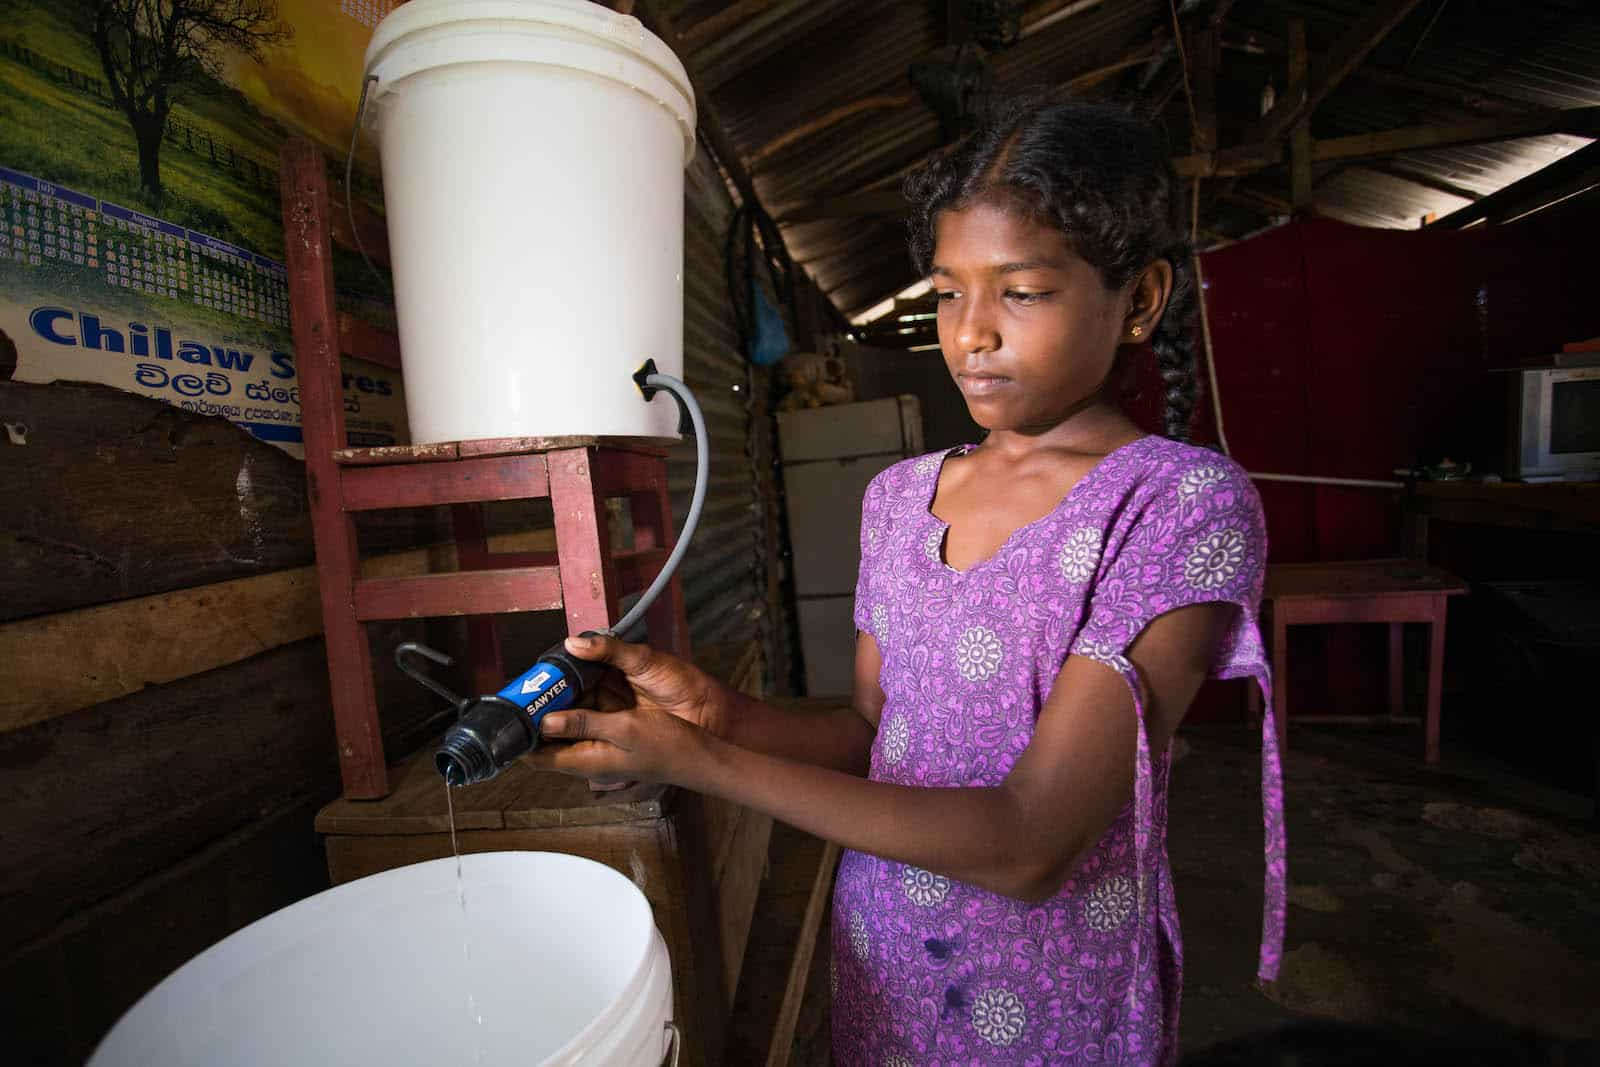 A girl in a purple shirt stands inside holding a water filter connecting one bucket to another.